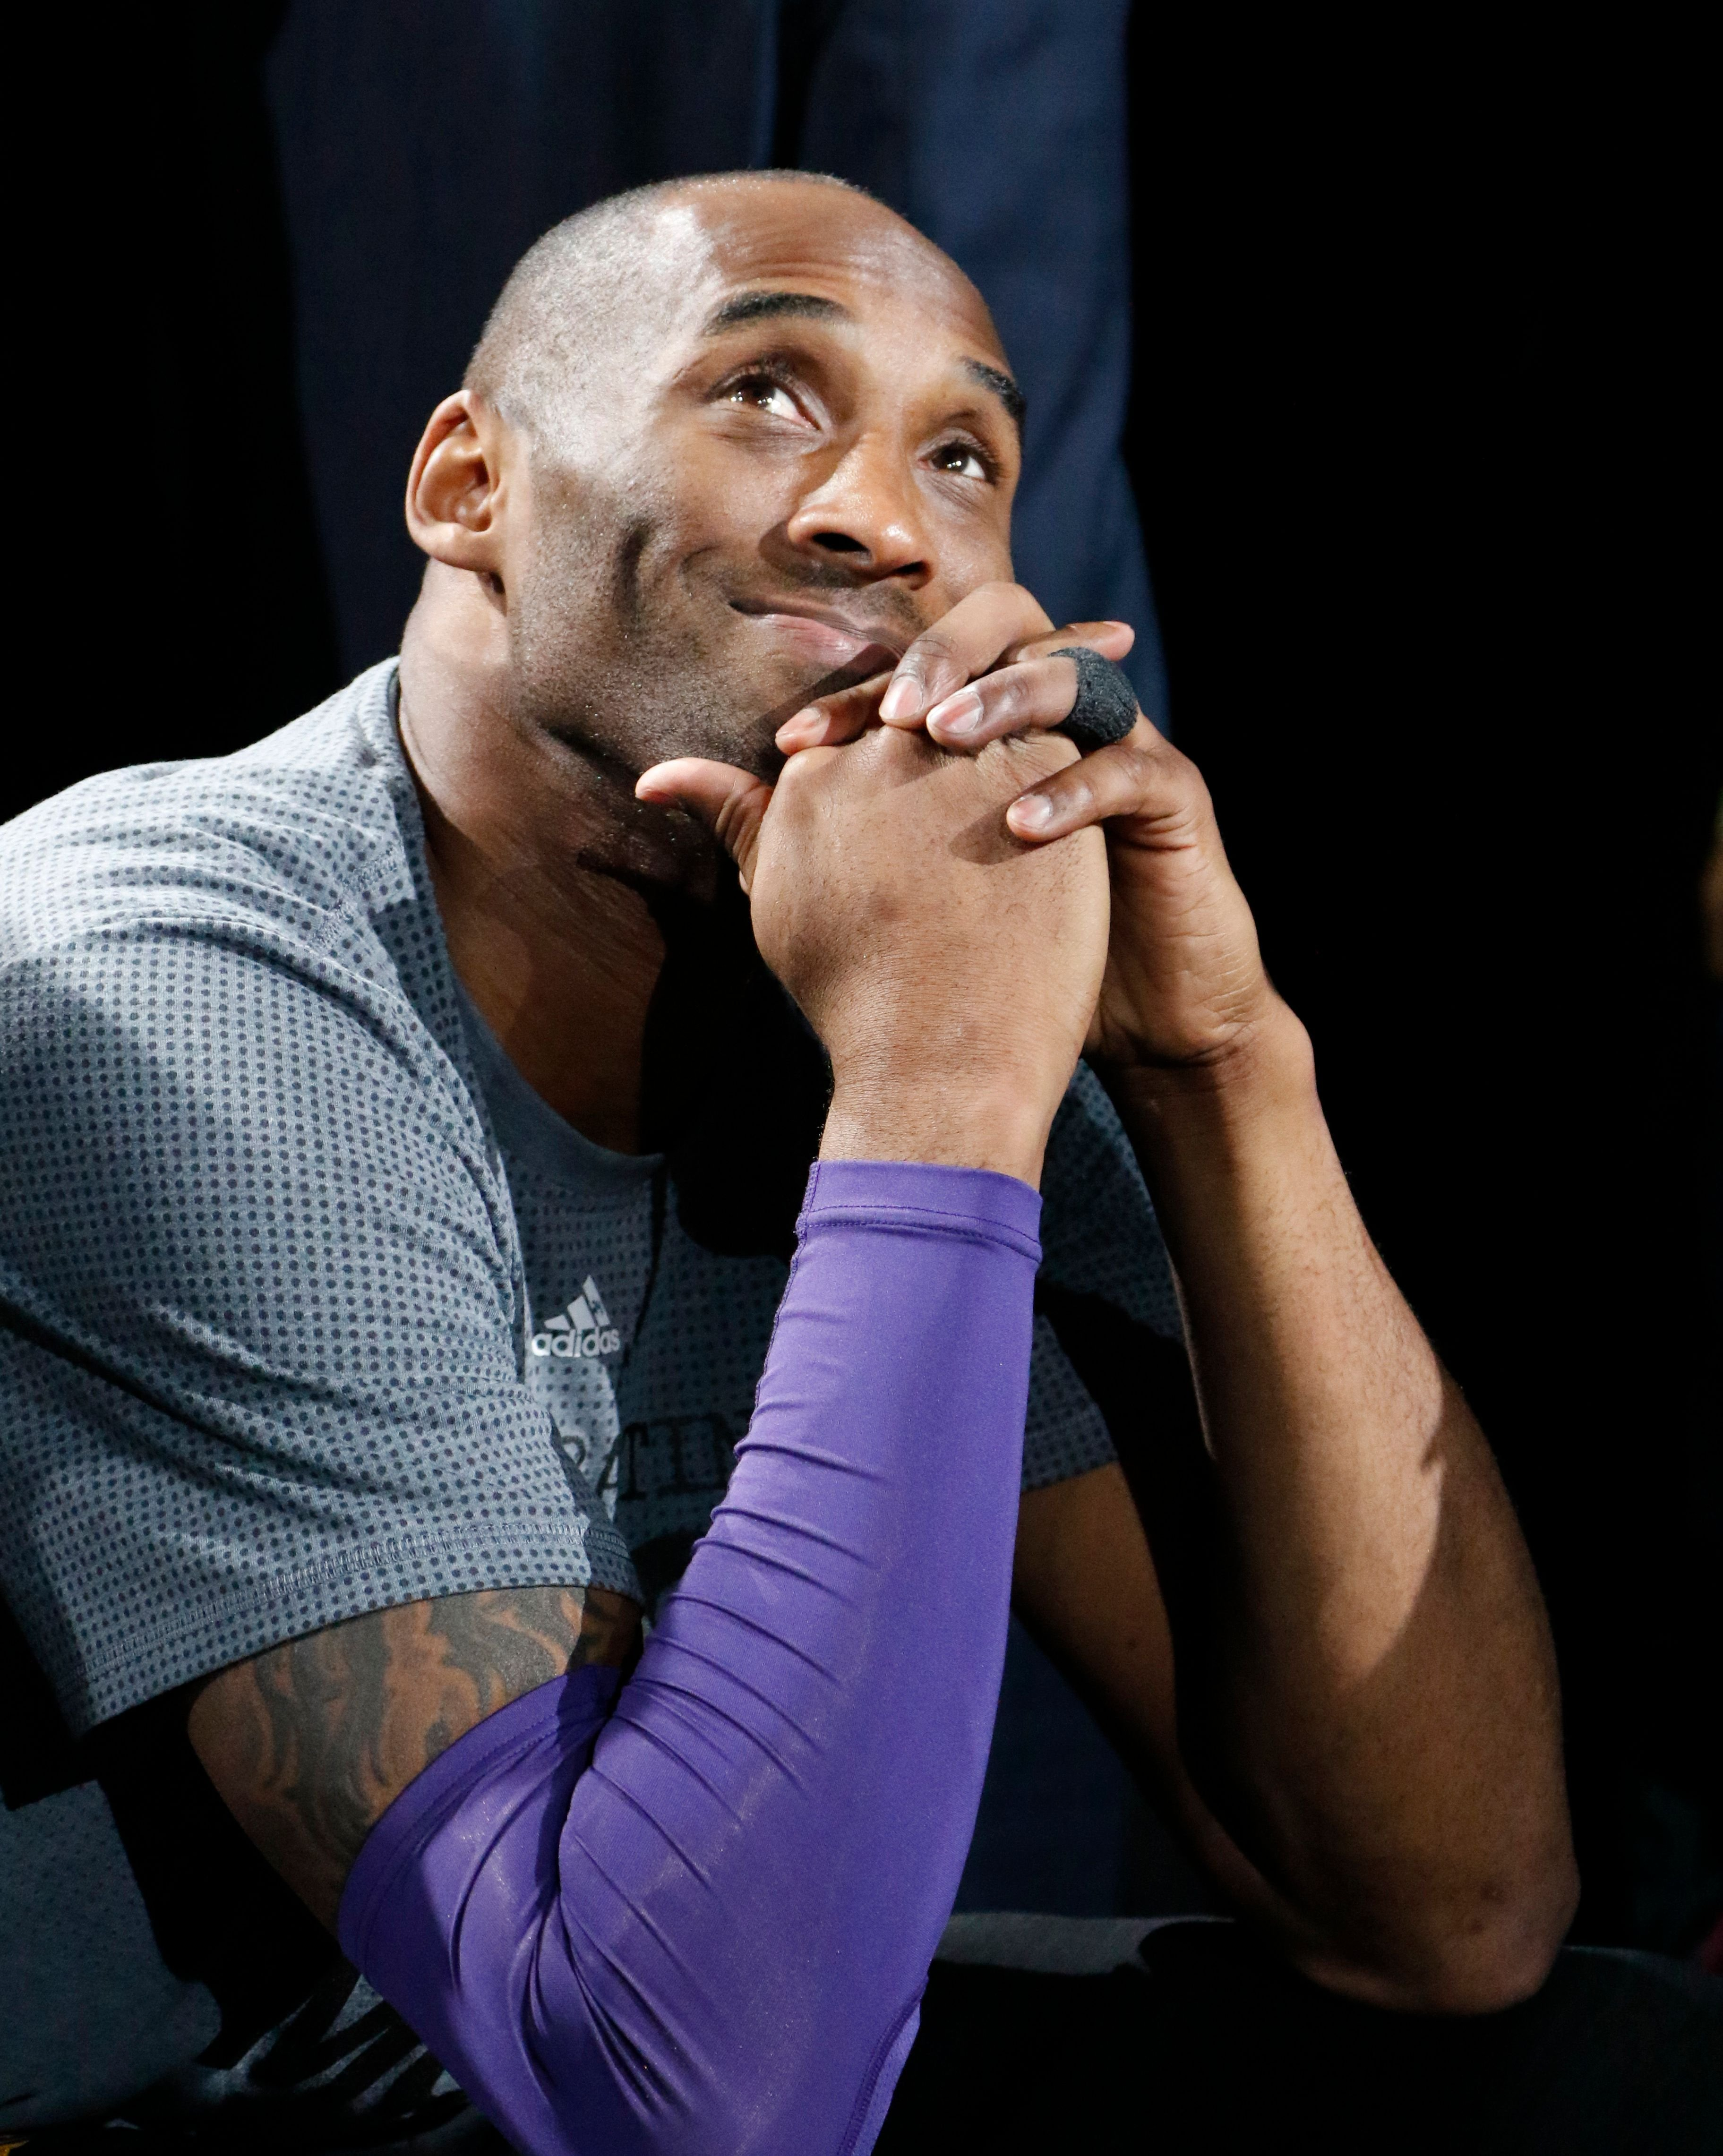 Late Kobe Bryant of the Los Angeles Lakers at AT&T Center on February 6, 2016 in San Antonio, Texas. | Photo: Getty Images